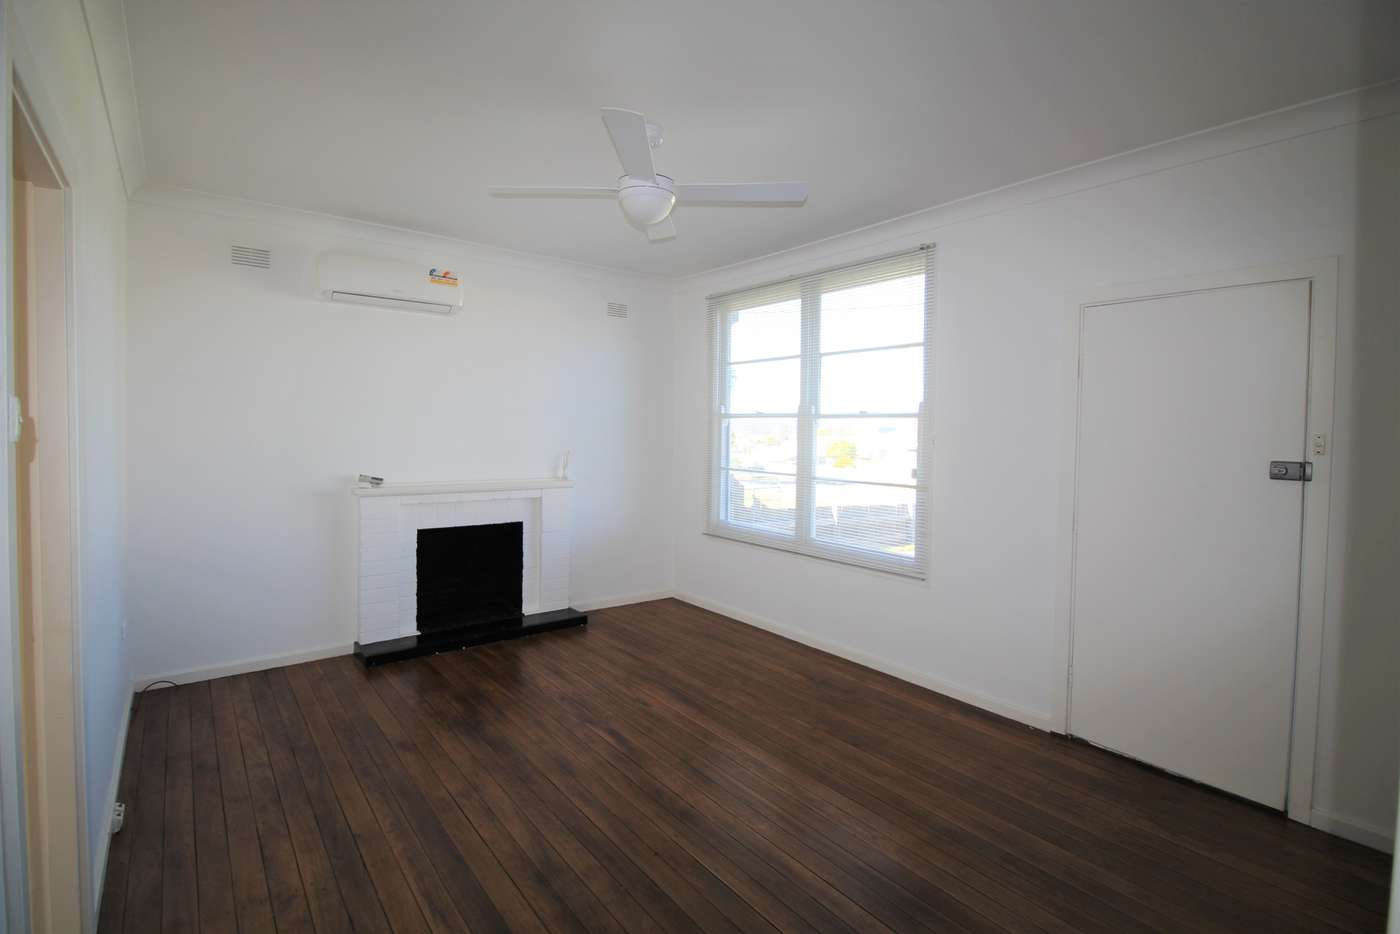 Sixth view of Homely house listing, 6 Lambert Street, Cessnock NSW 2325